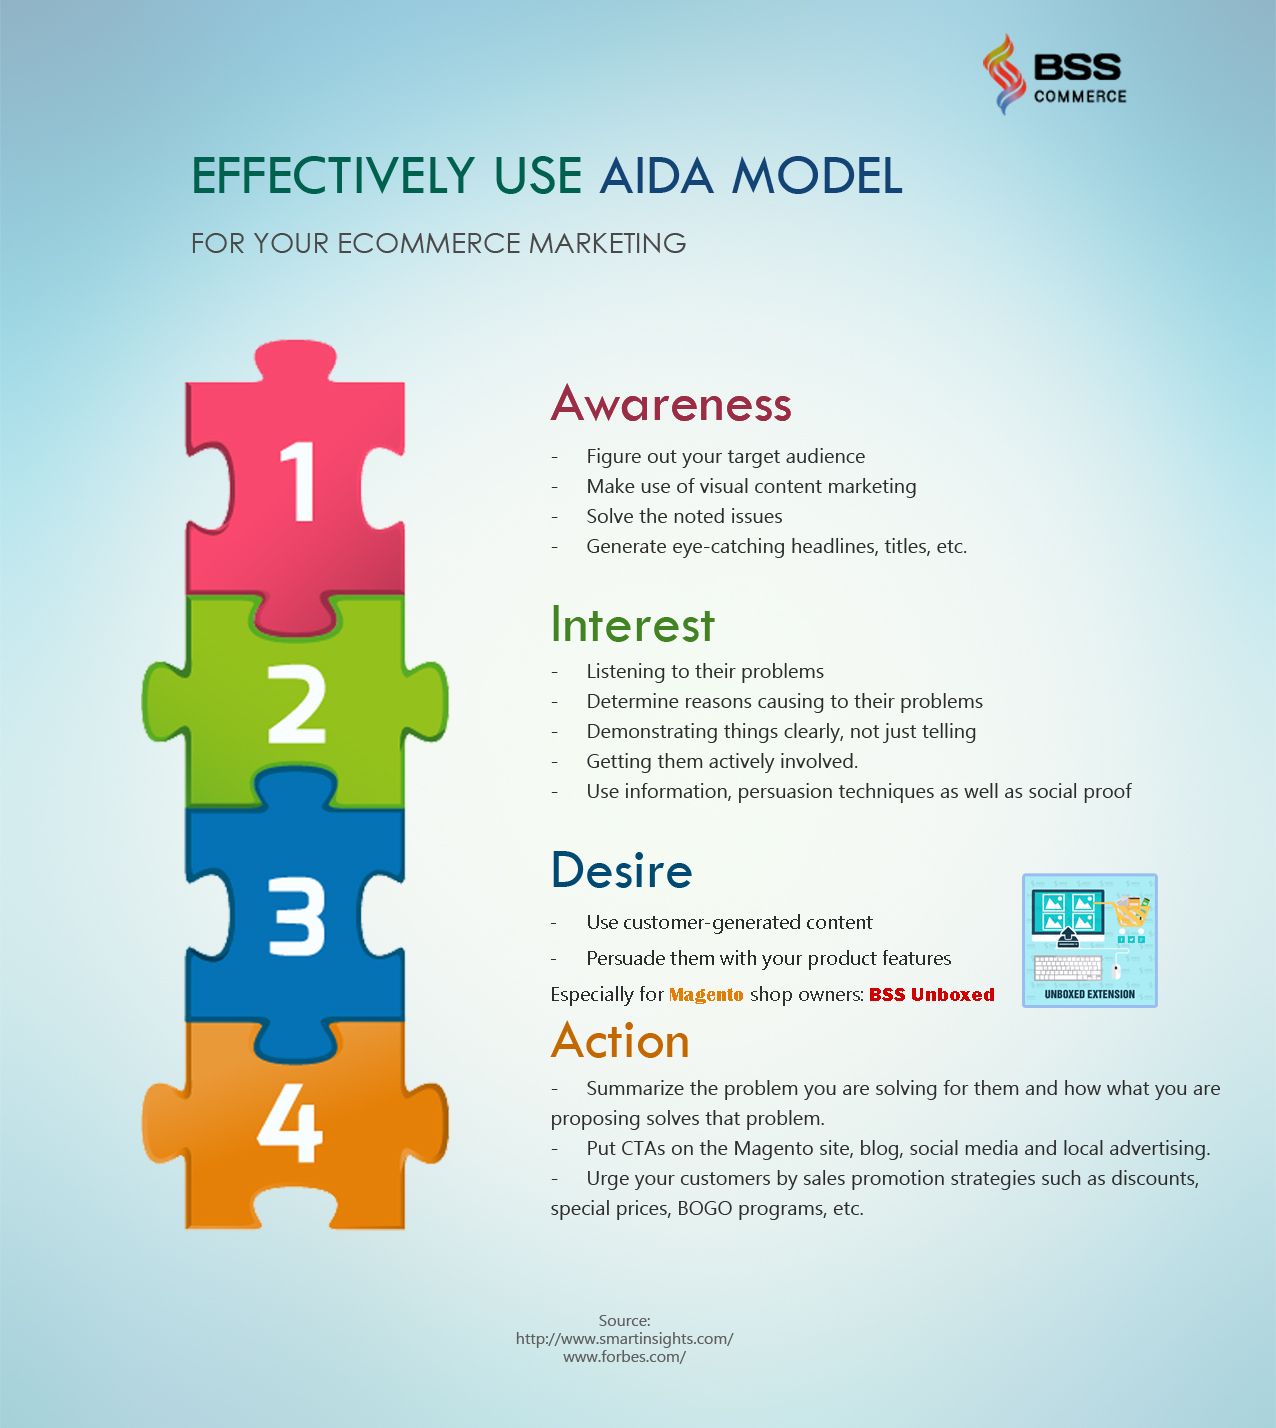 aida brief voorbeeld How to effectively use AIDA Model for your Ecommerce Marketing